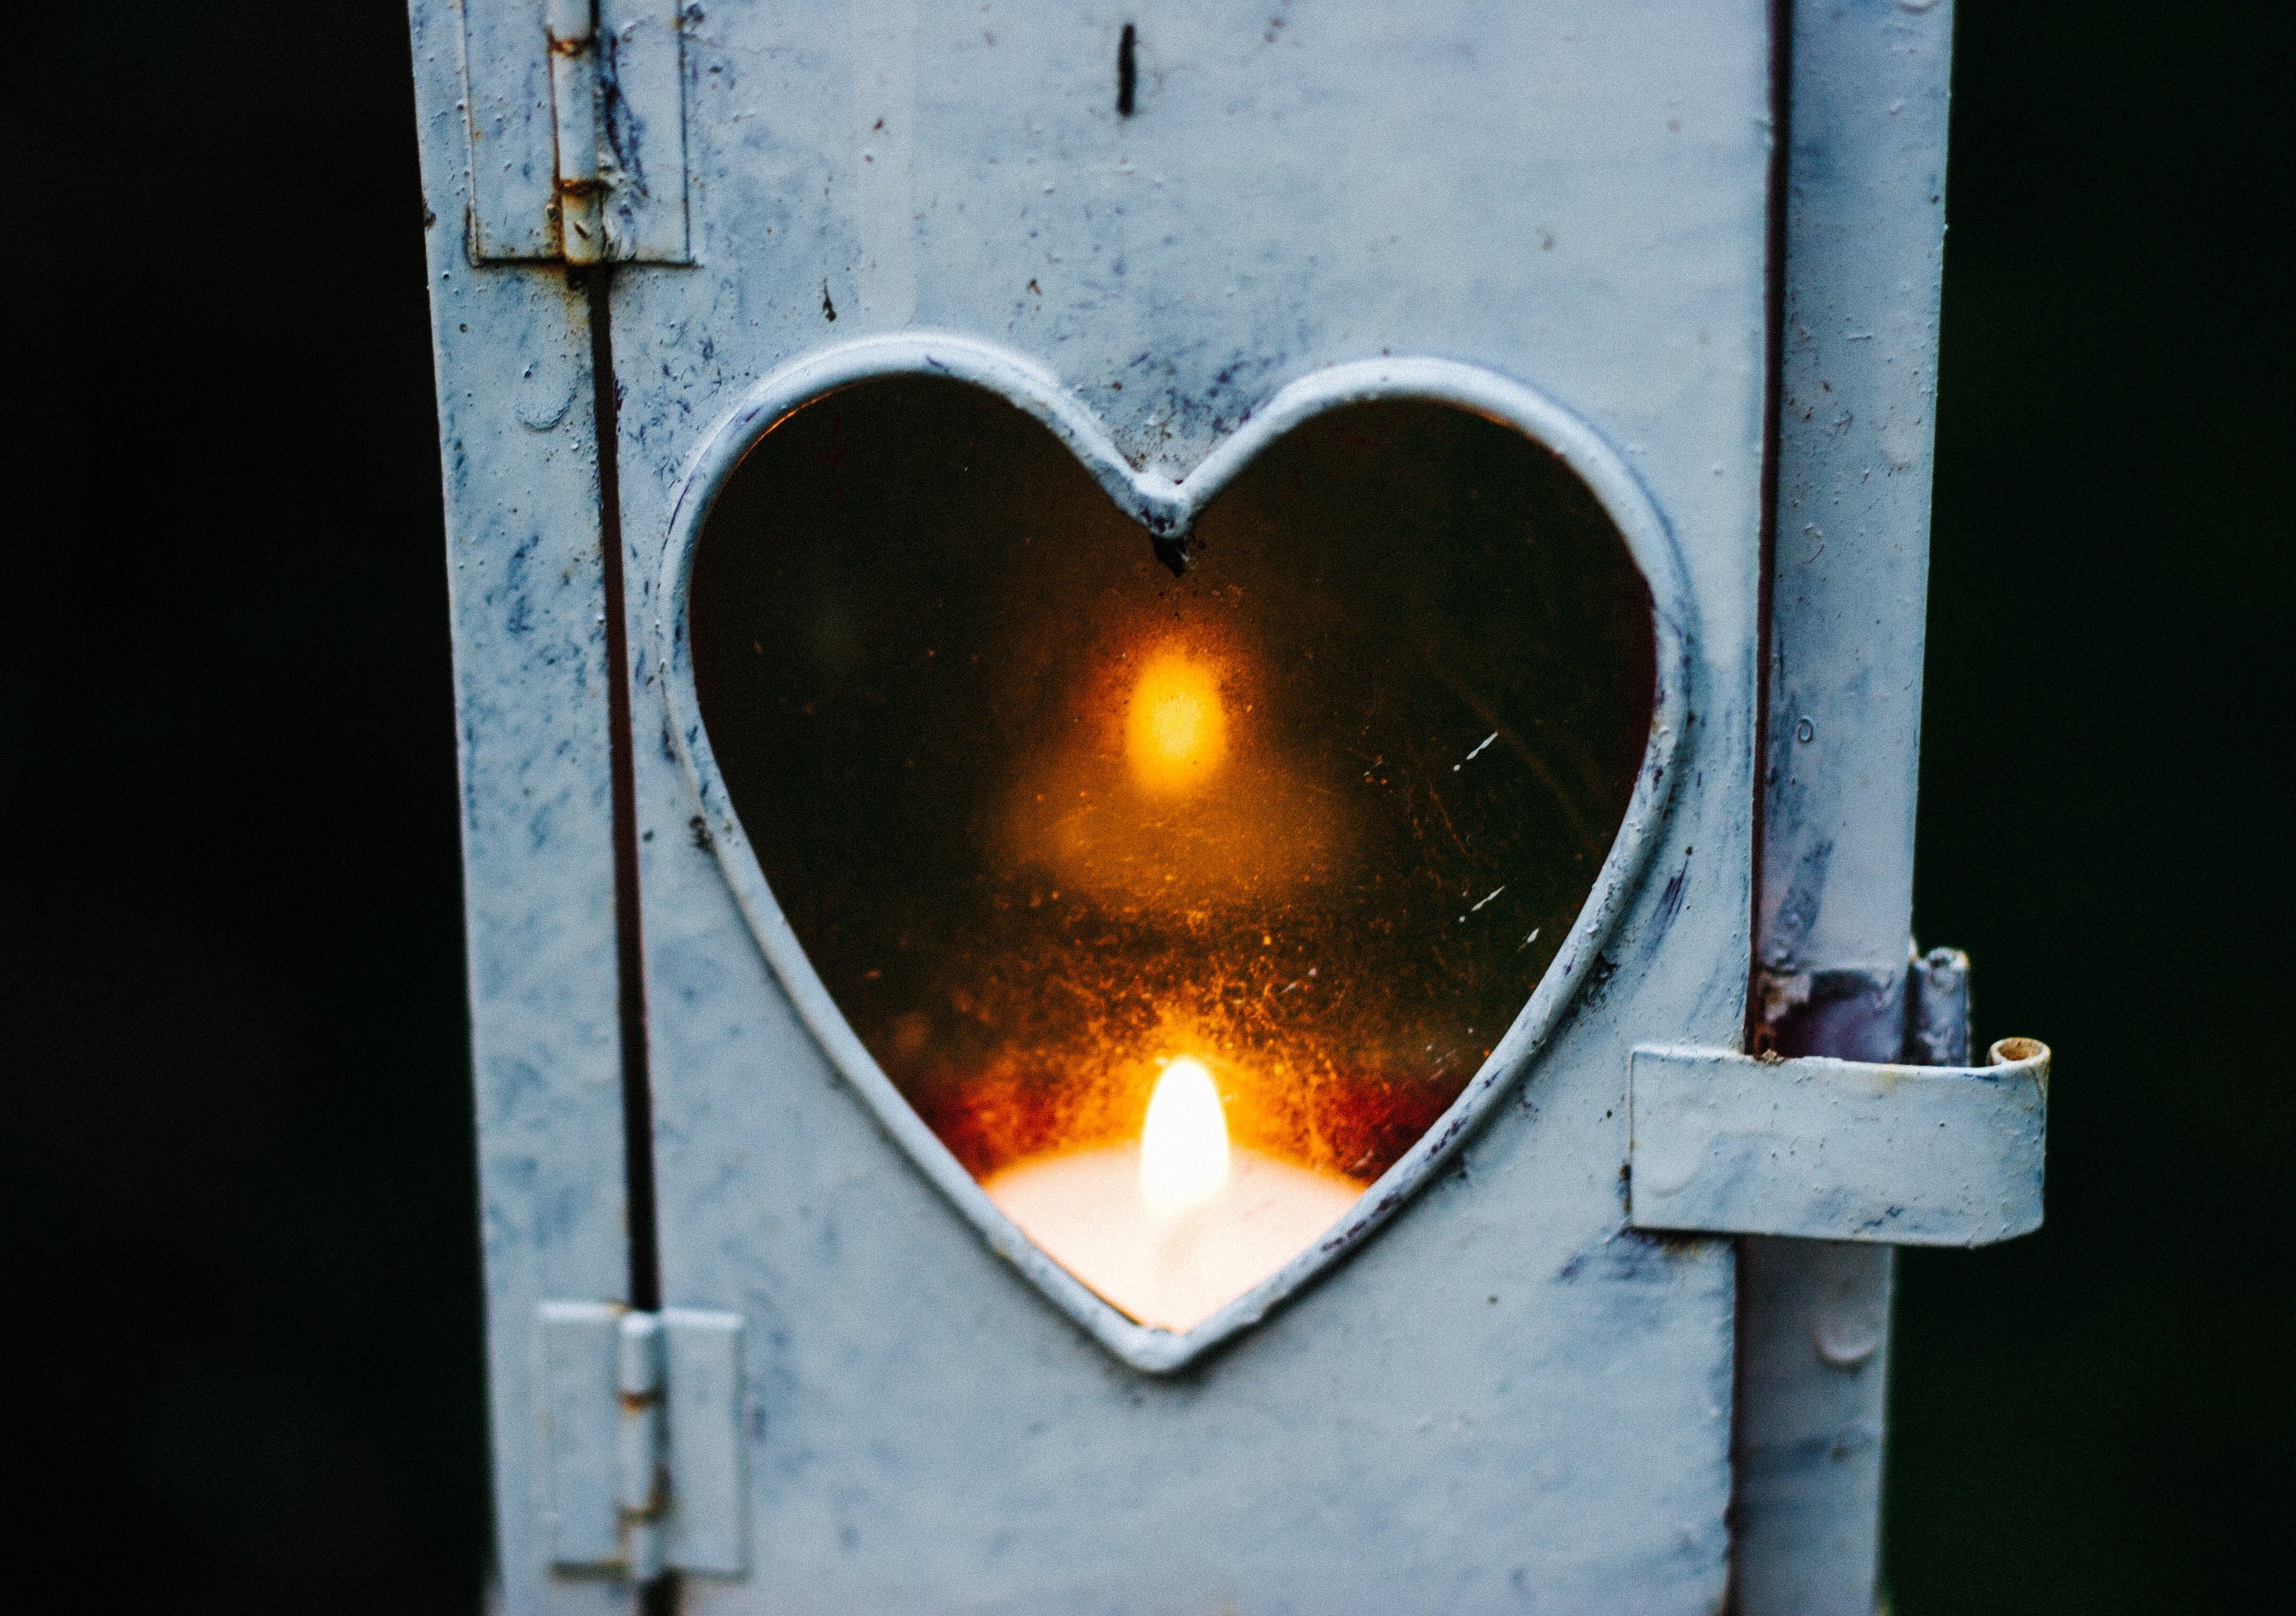 Photo of a candle in a metal container with a heart shaped window.